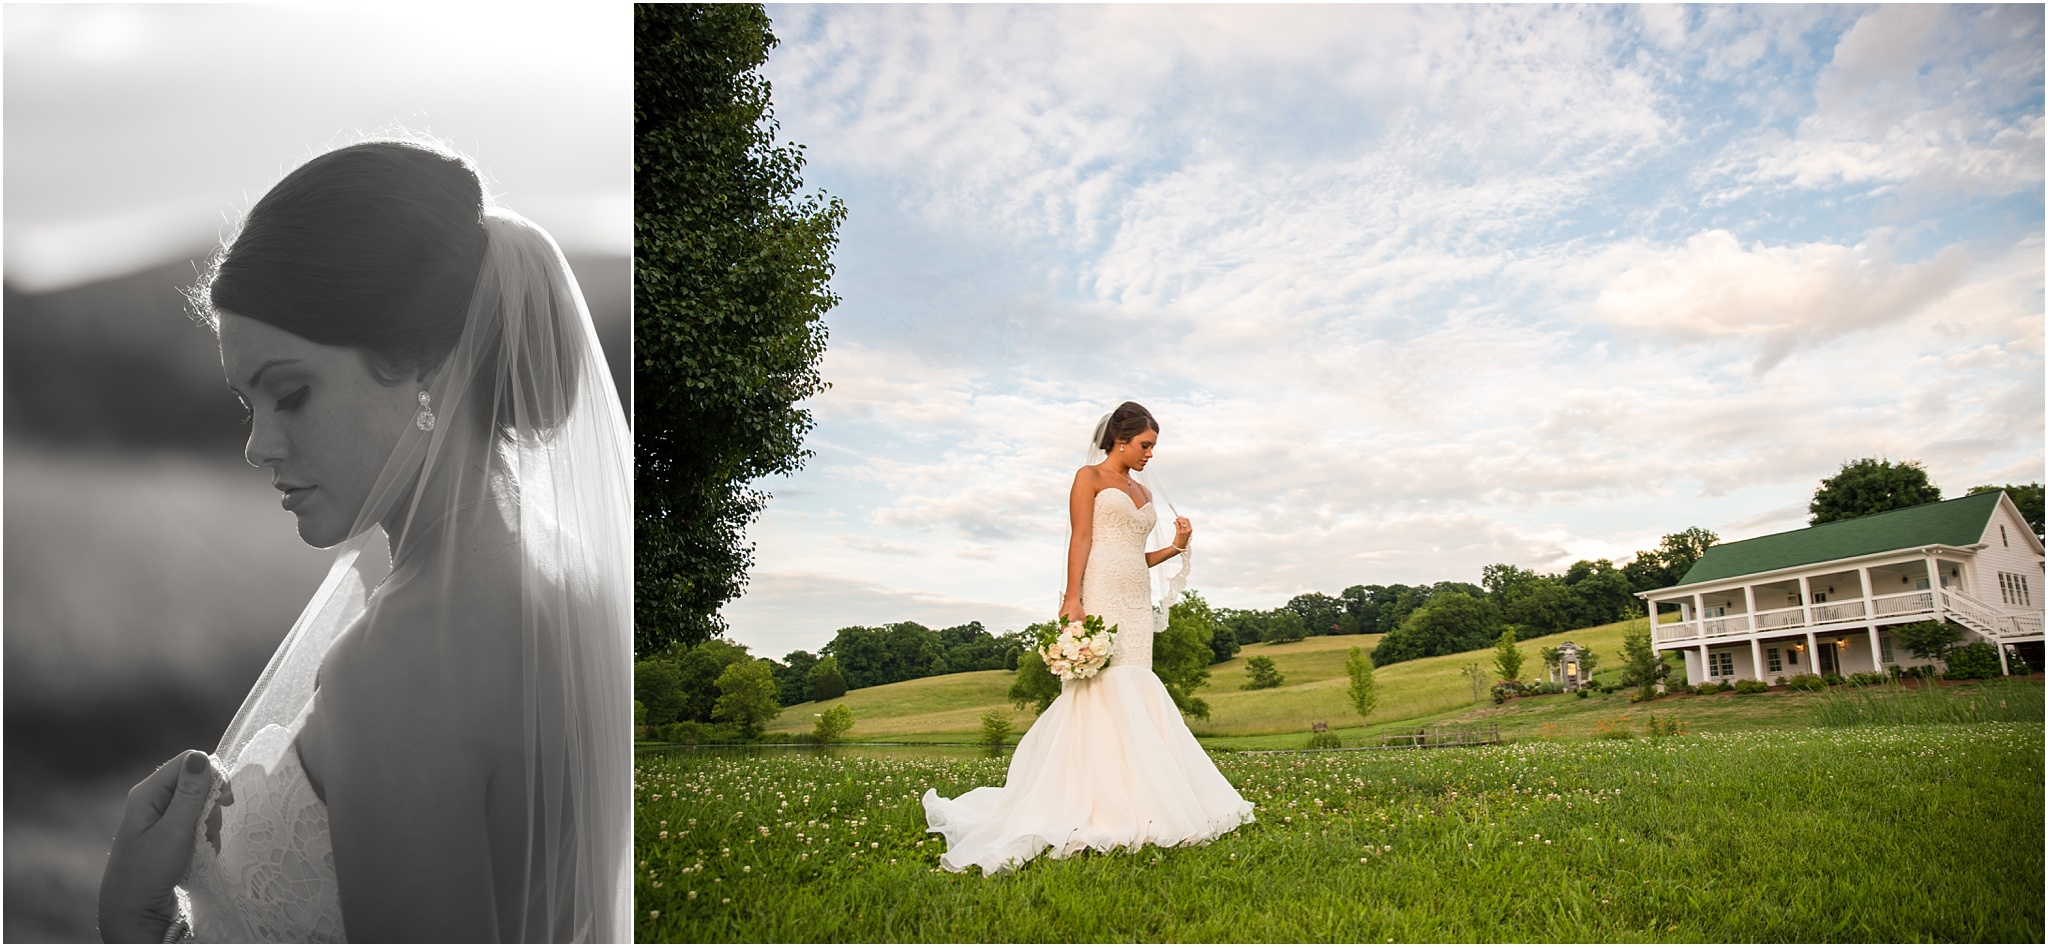 Greg Smit Photography Nashville wedding bridal photographer Mint Springs Farm 7